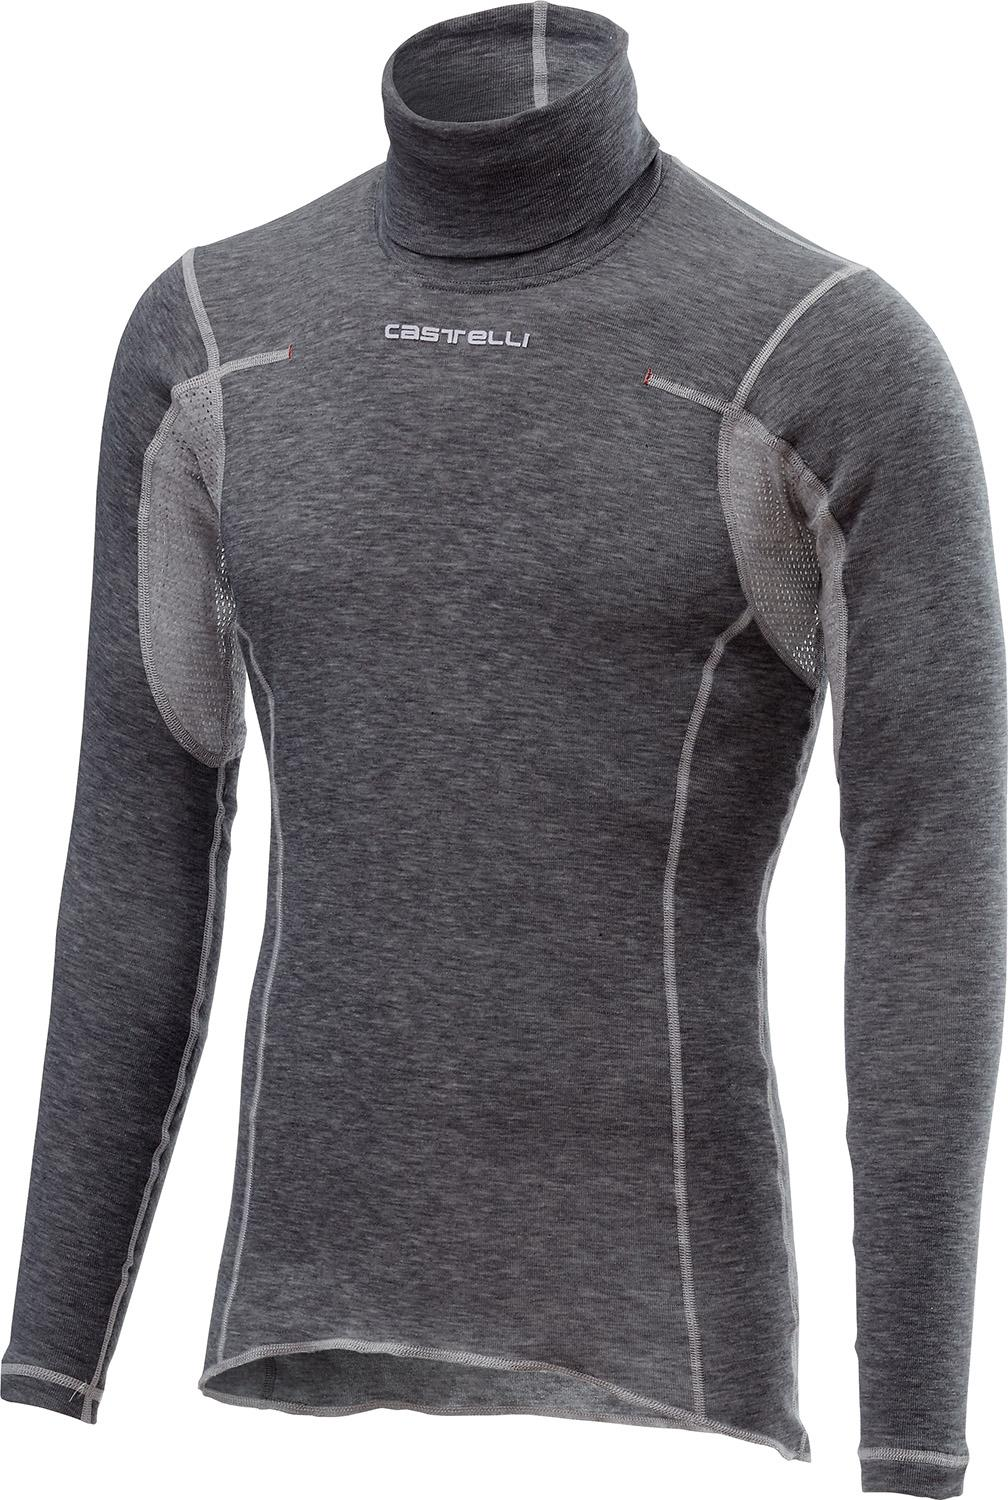 Castelli Flanders Warm Base Layer With Neck Warmer - AW18